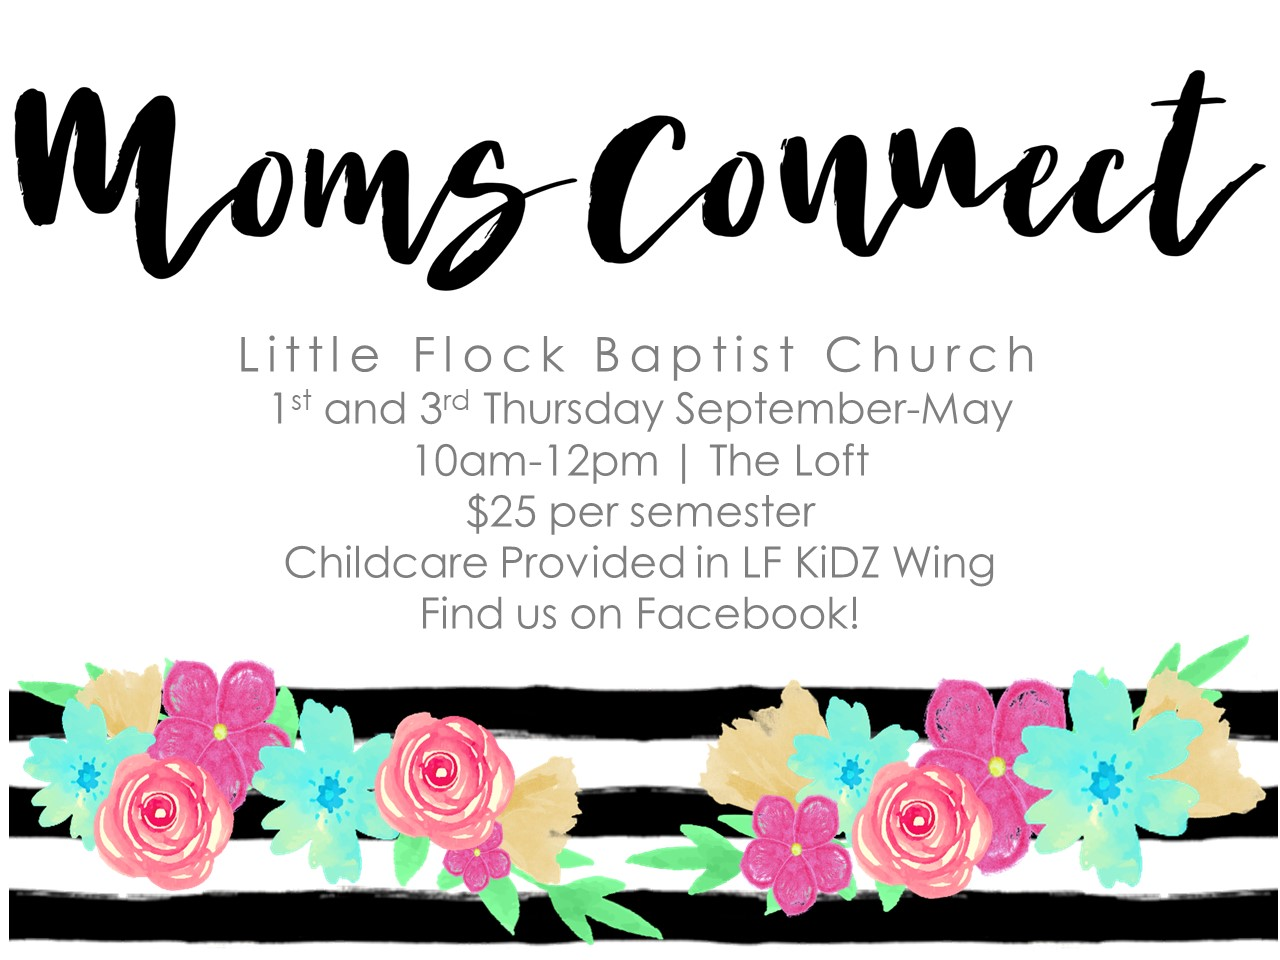 Moms Connect - Moms Connect is ministry design to support, encourage, and uplift moms through fellowship, bible study, and practical motherhood discussions. For more information about our events and ministry email momsconnect@littleflock.com or find us on Facebook.